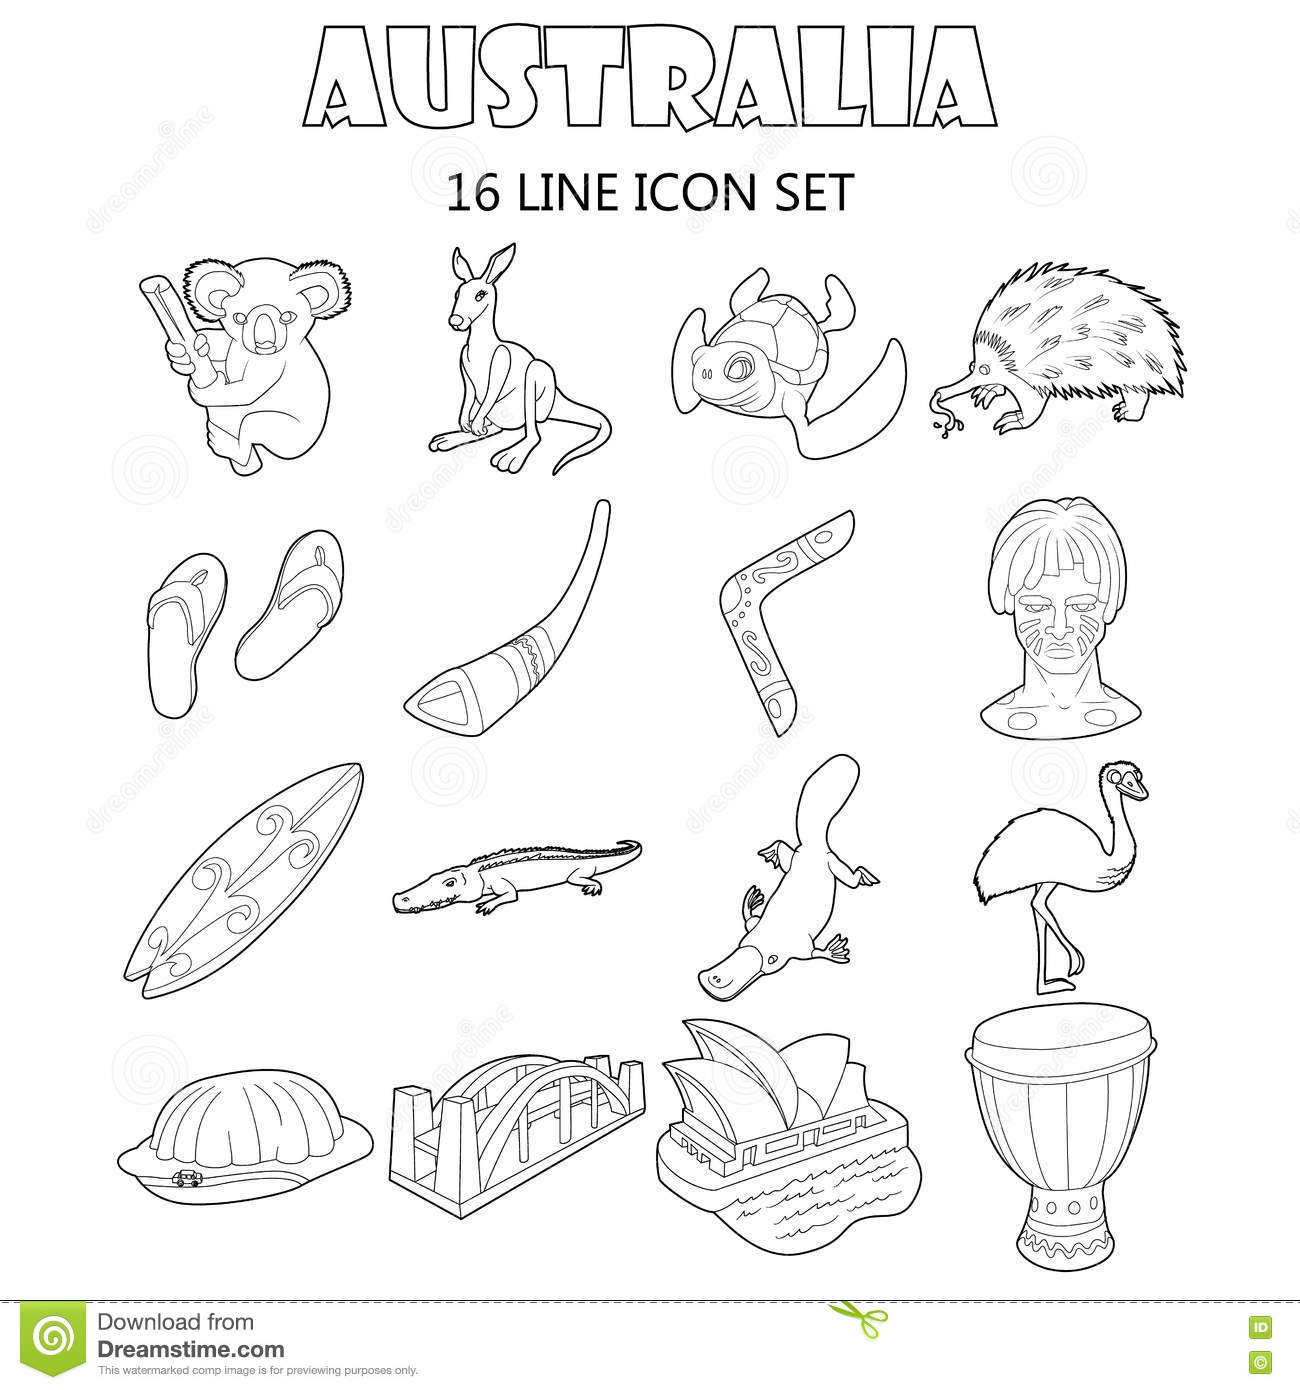 Southern Cartoons, Illustrations & Vector Stock Images